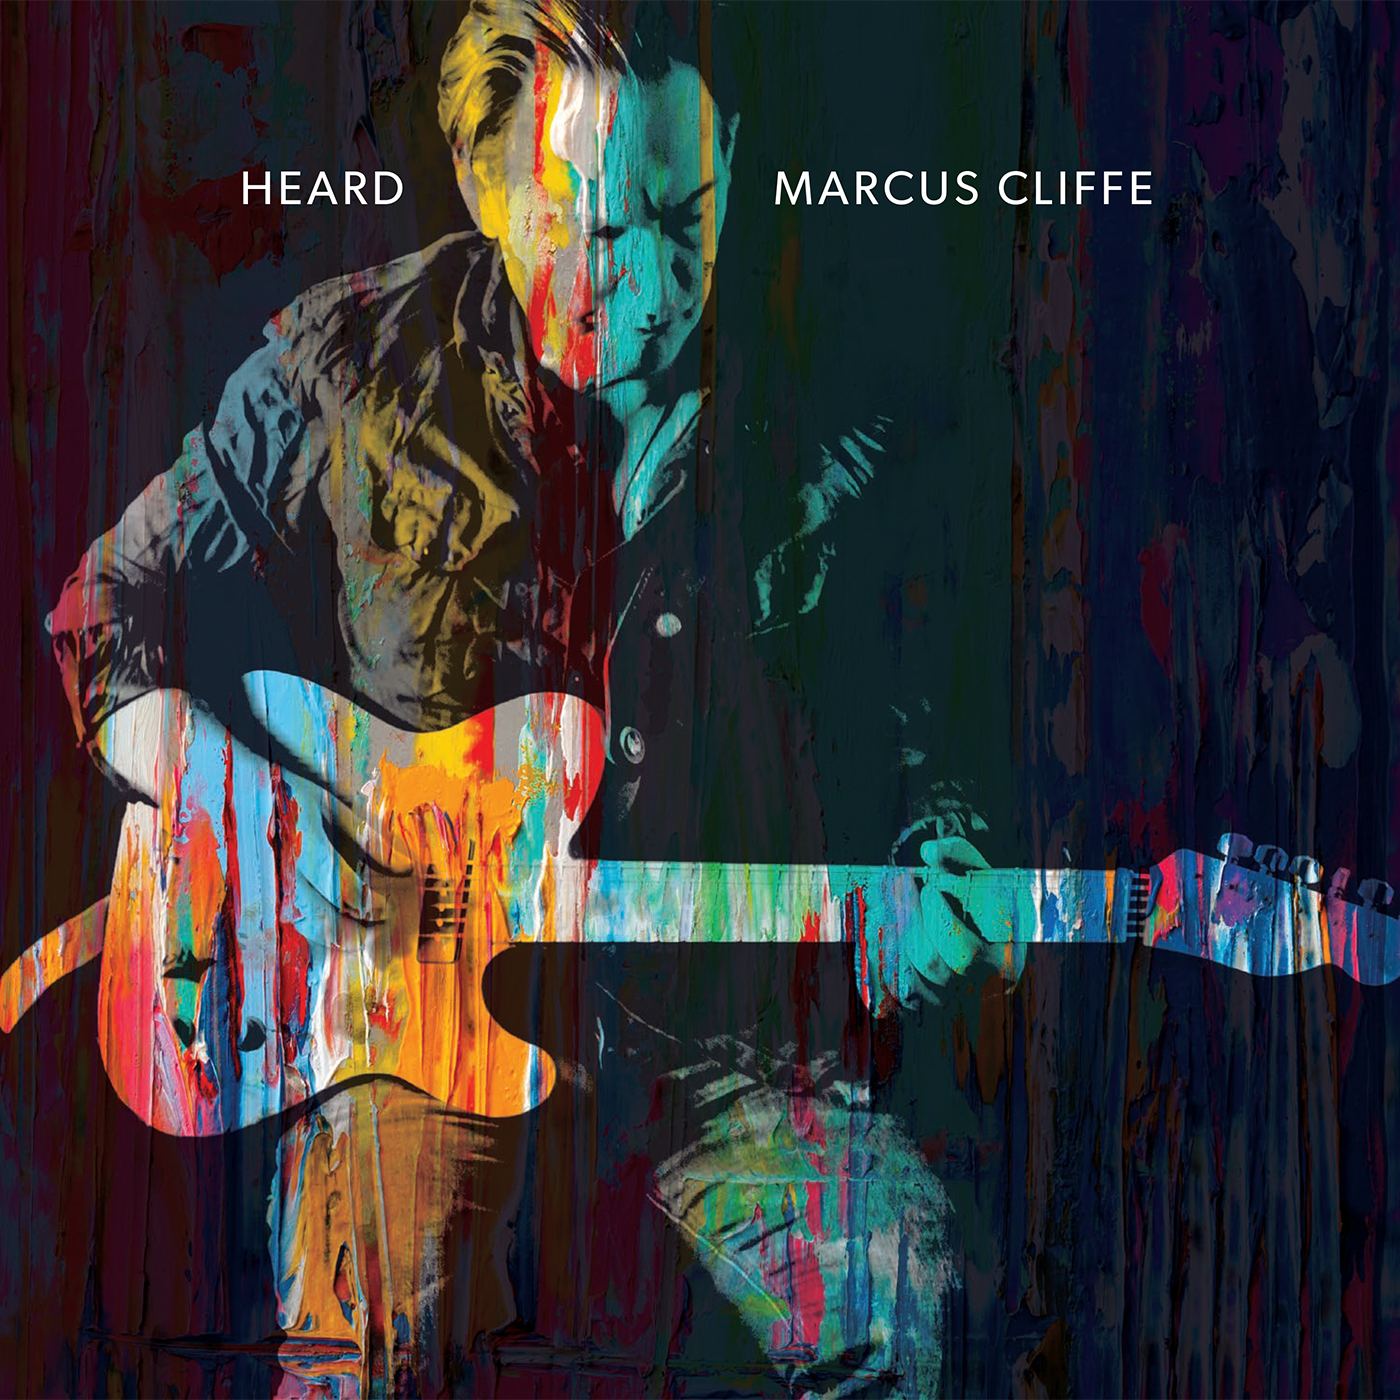 Marcus Cliffe - Heard (SIGNED)